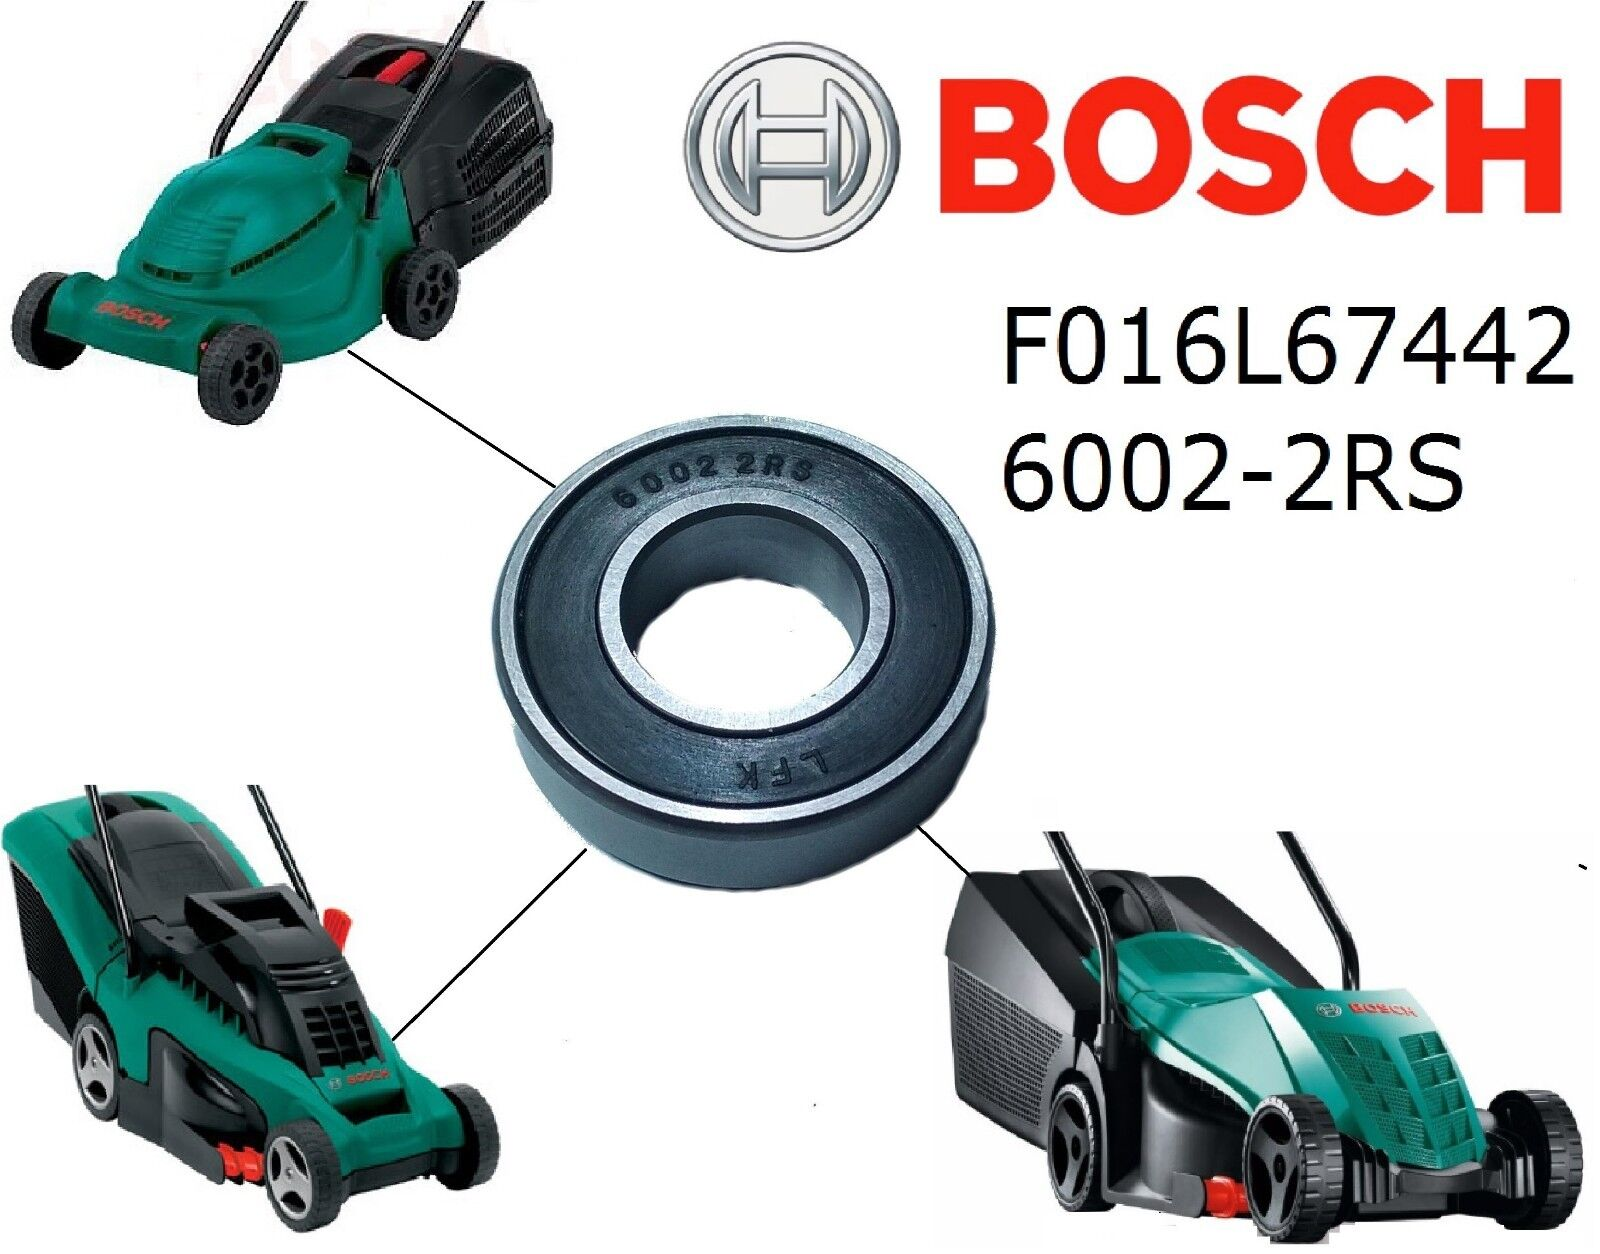 genuine bosch rotak 320 32 37 bearing 6003 2rs - f016l67422 for